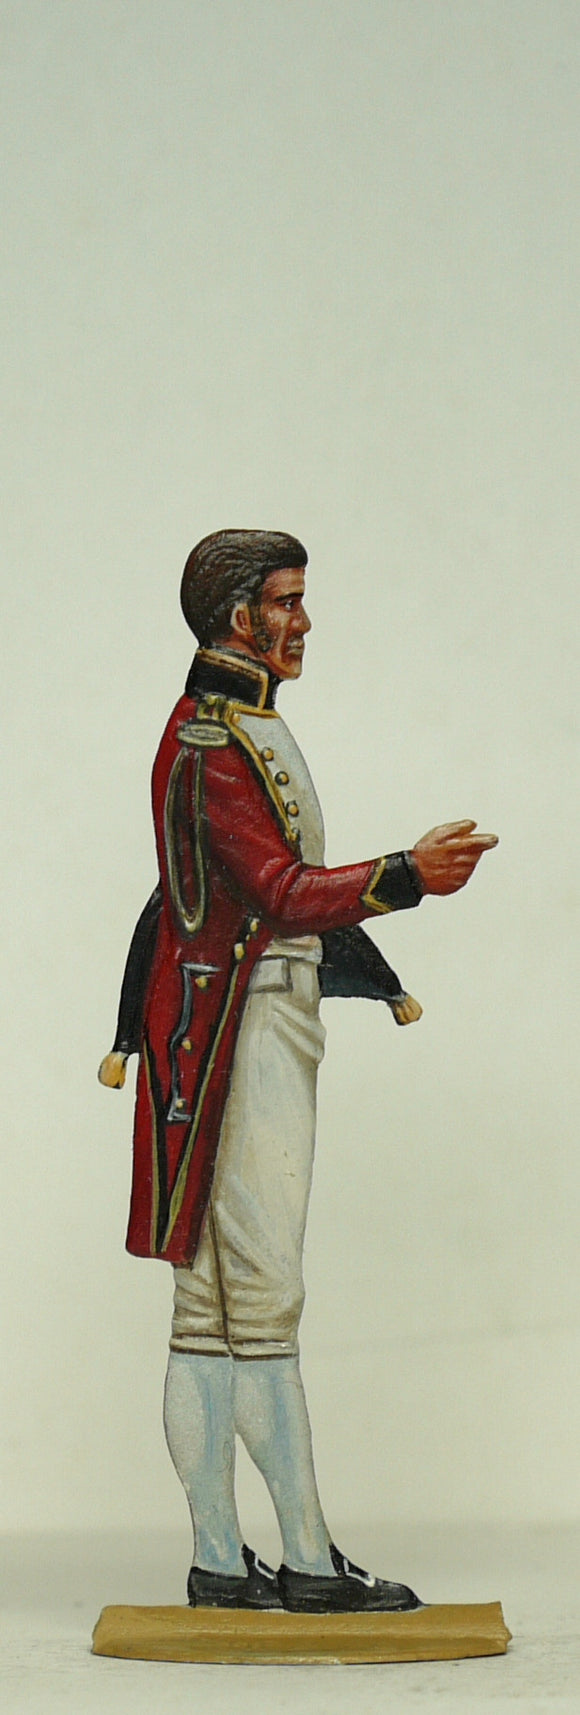 pointing - Glorious Empires-Historical Miniatures